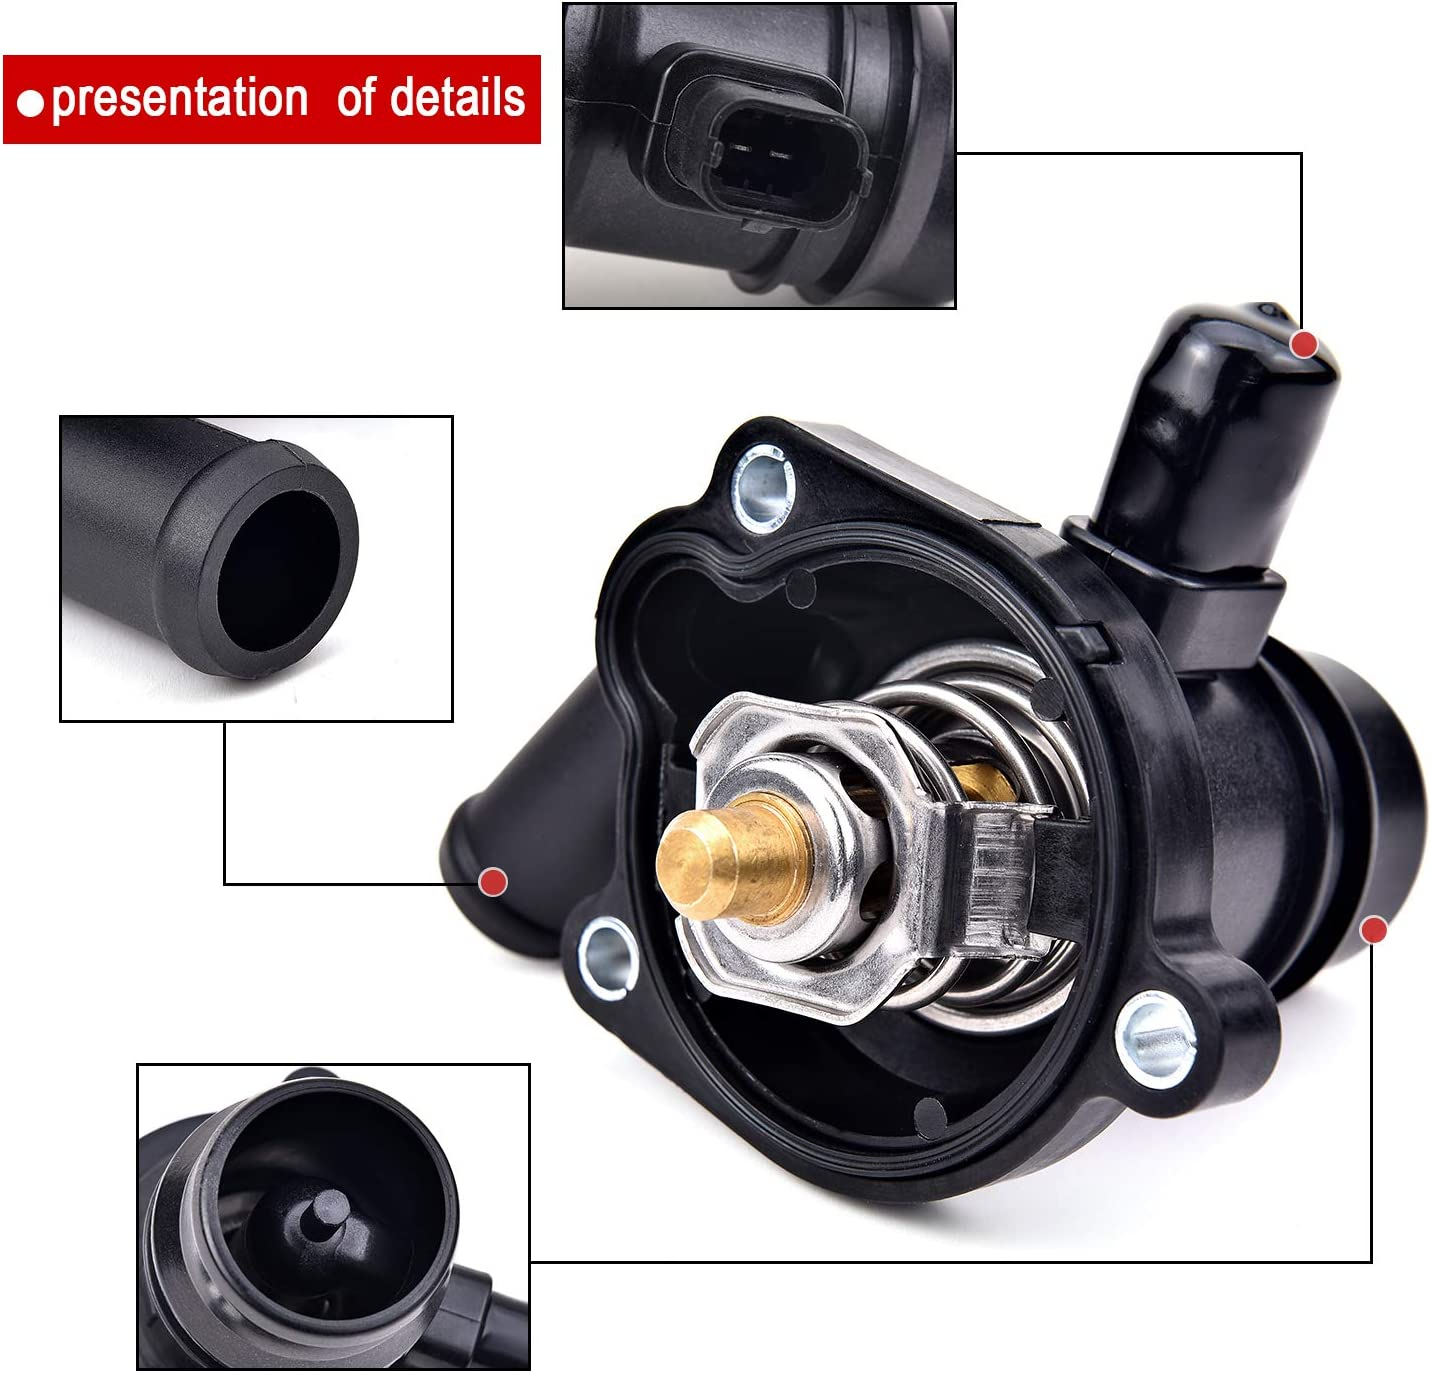 EVIL ENERGY 25200455 Thermostat Housing Assembly Fit for Buick Encore 2014-2019 Chevrolet Cruze 2015 Chevrolet Cruze Limited 2016 1.4L